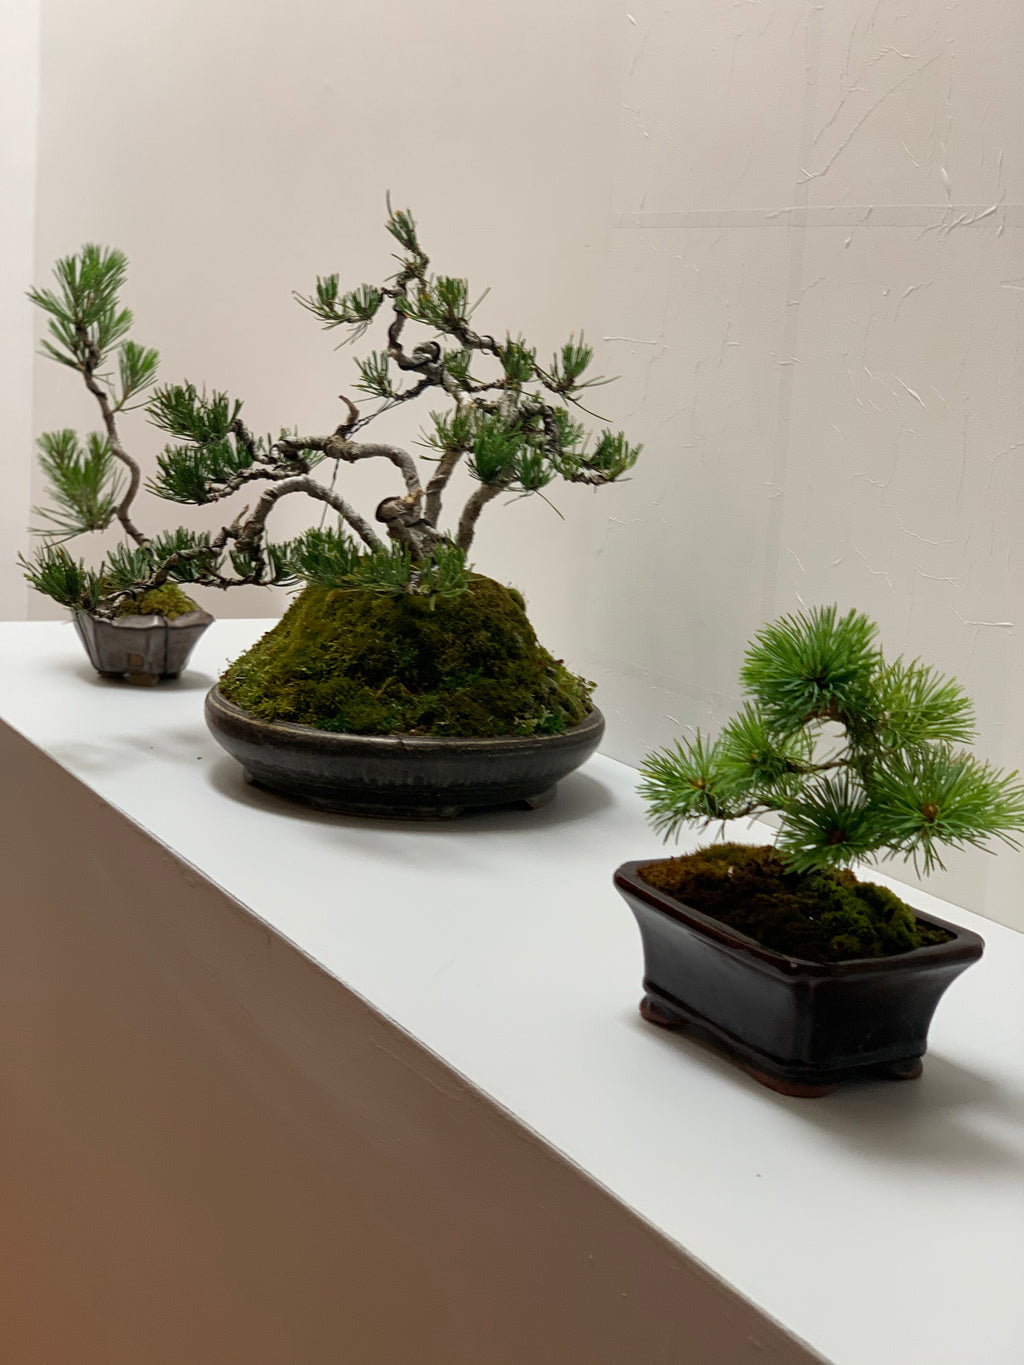 Bonsai Workshop With Kristen Calder's Pot